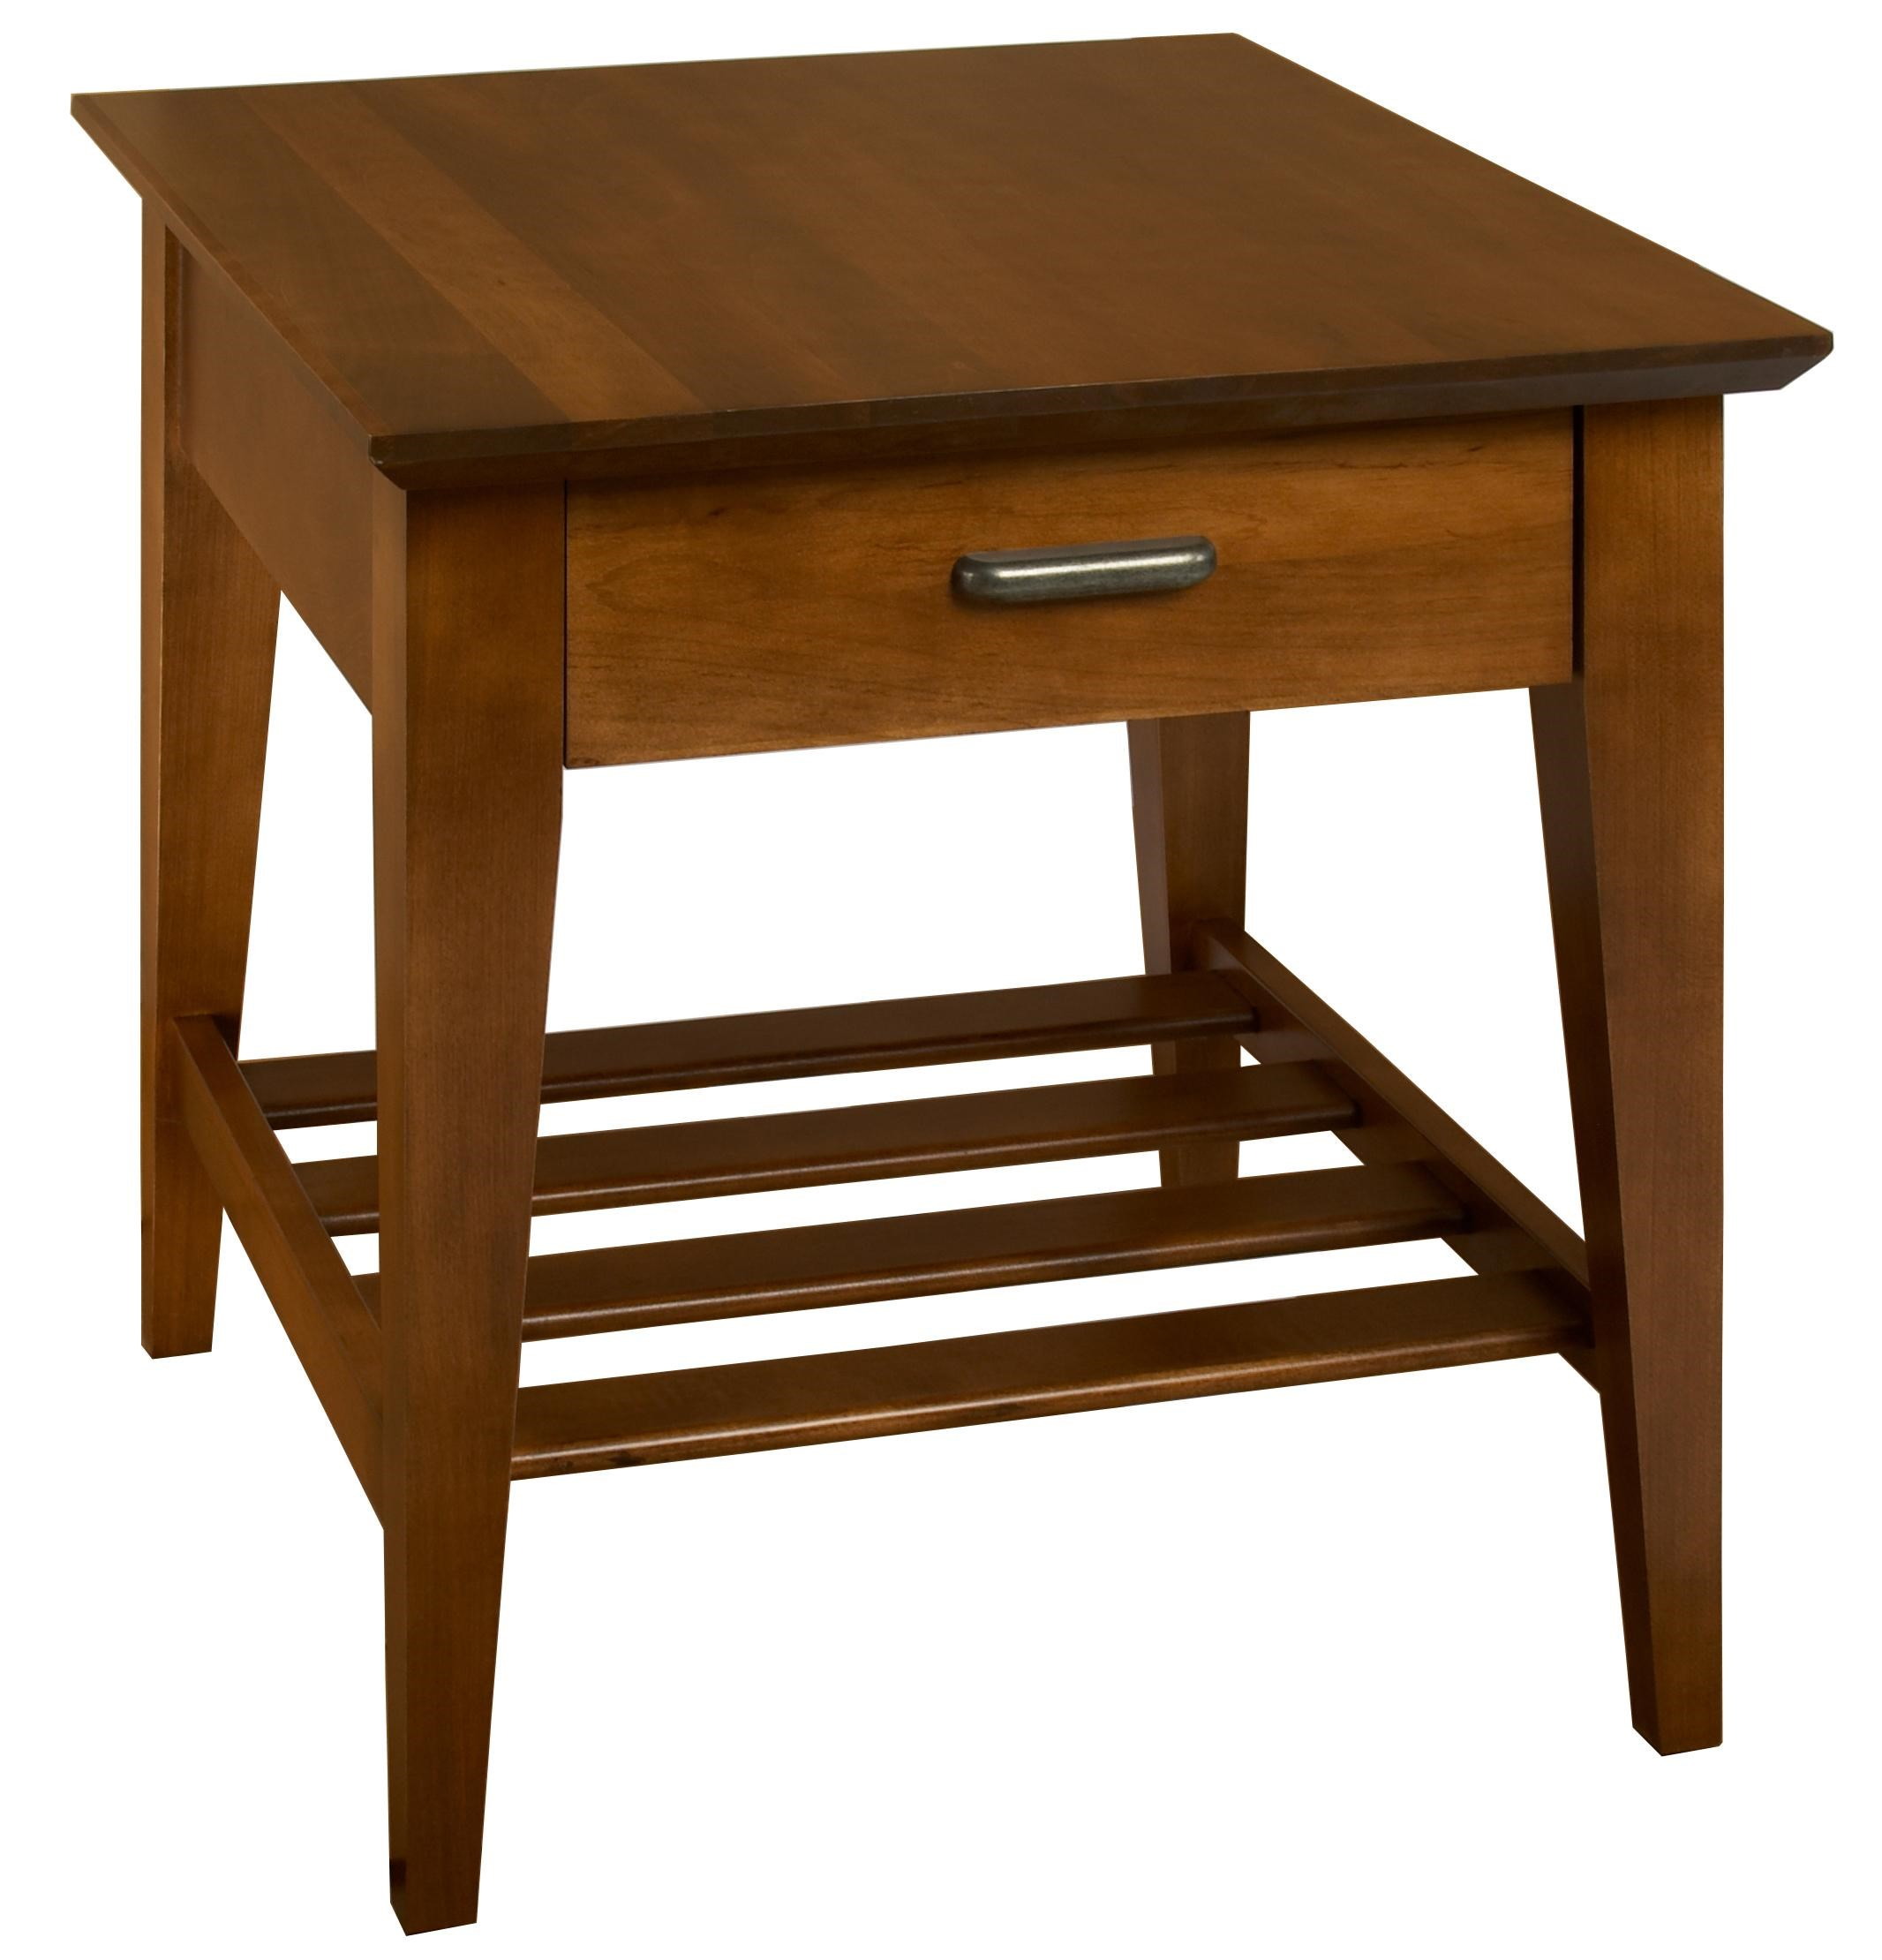 Contemporary Maple End Table with Slatted Shelf and Drawer